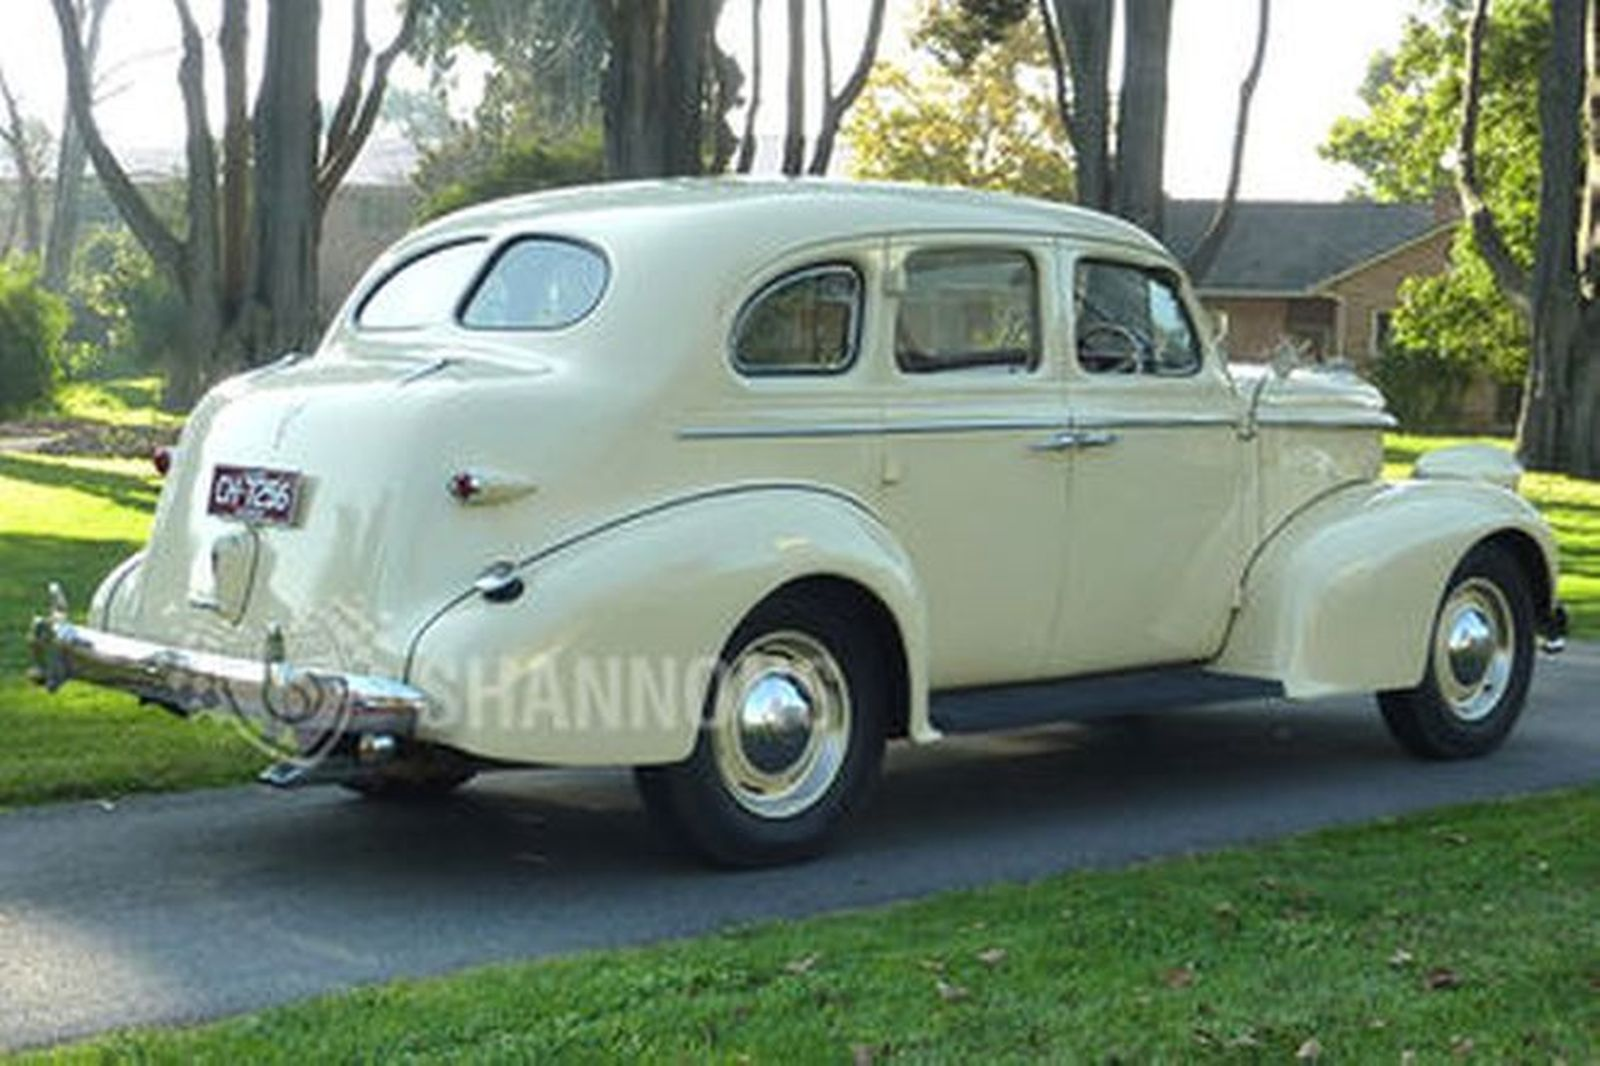 Sold oldsmobile sedan auctions lot 57 shannons for 1938 oldsmobile 2 door sedan